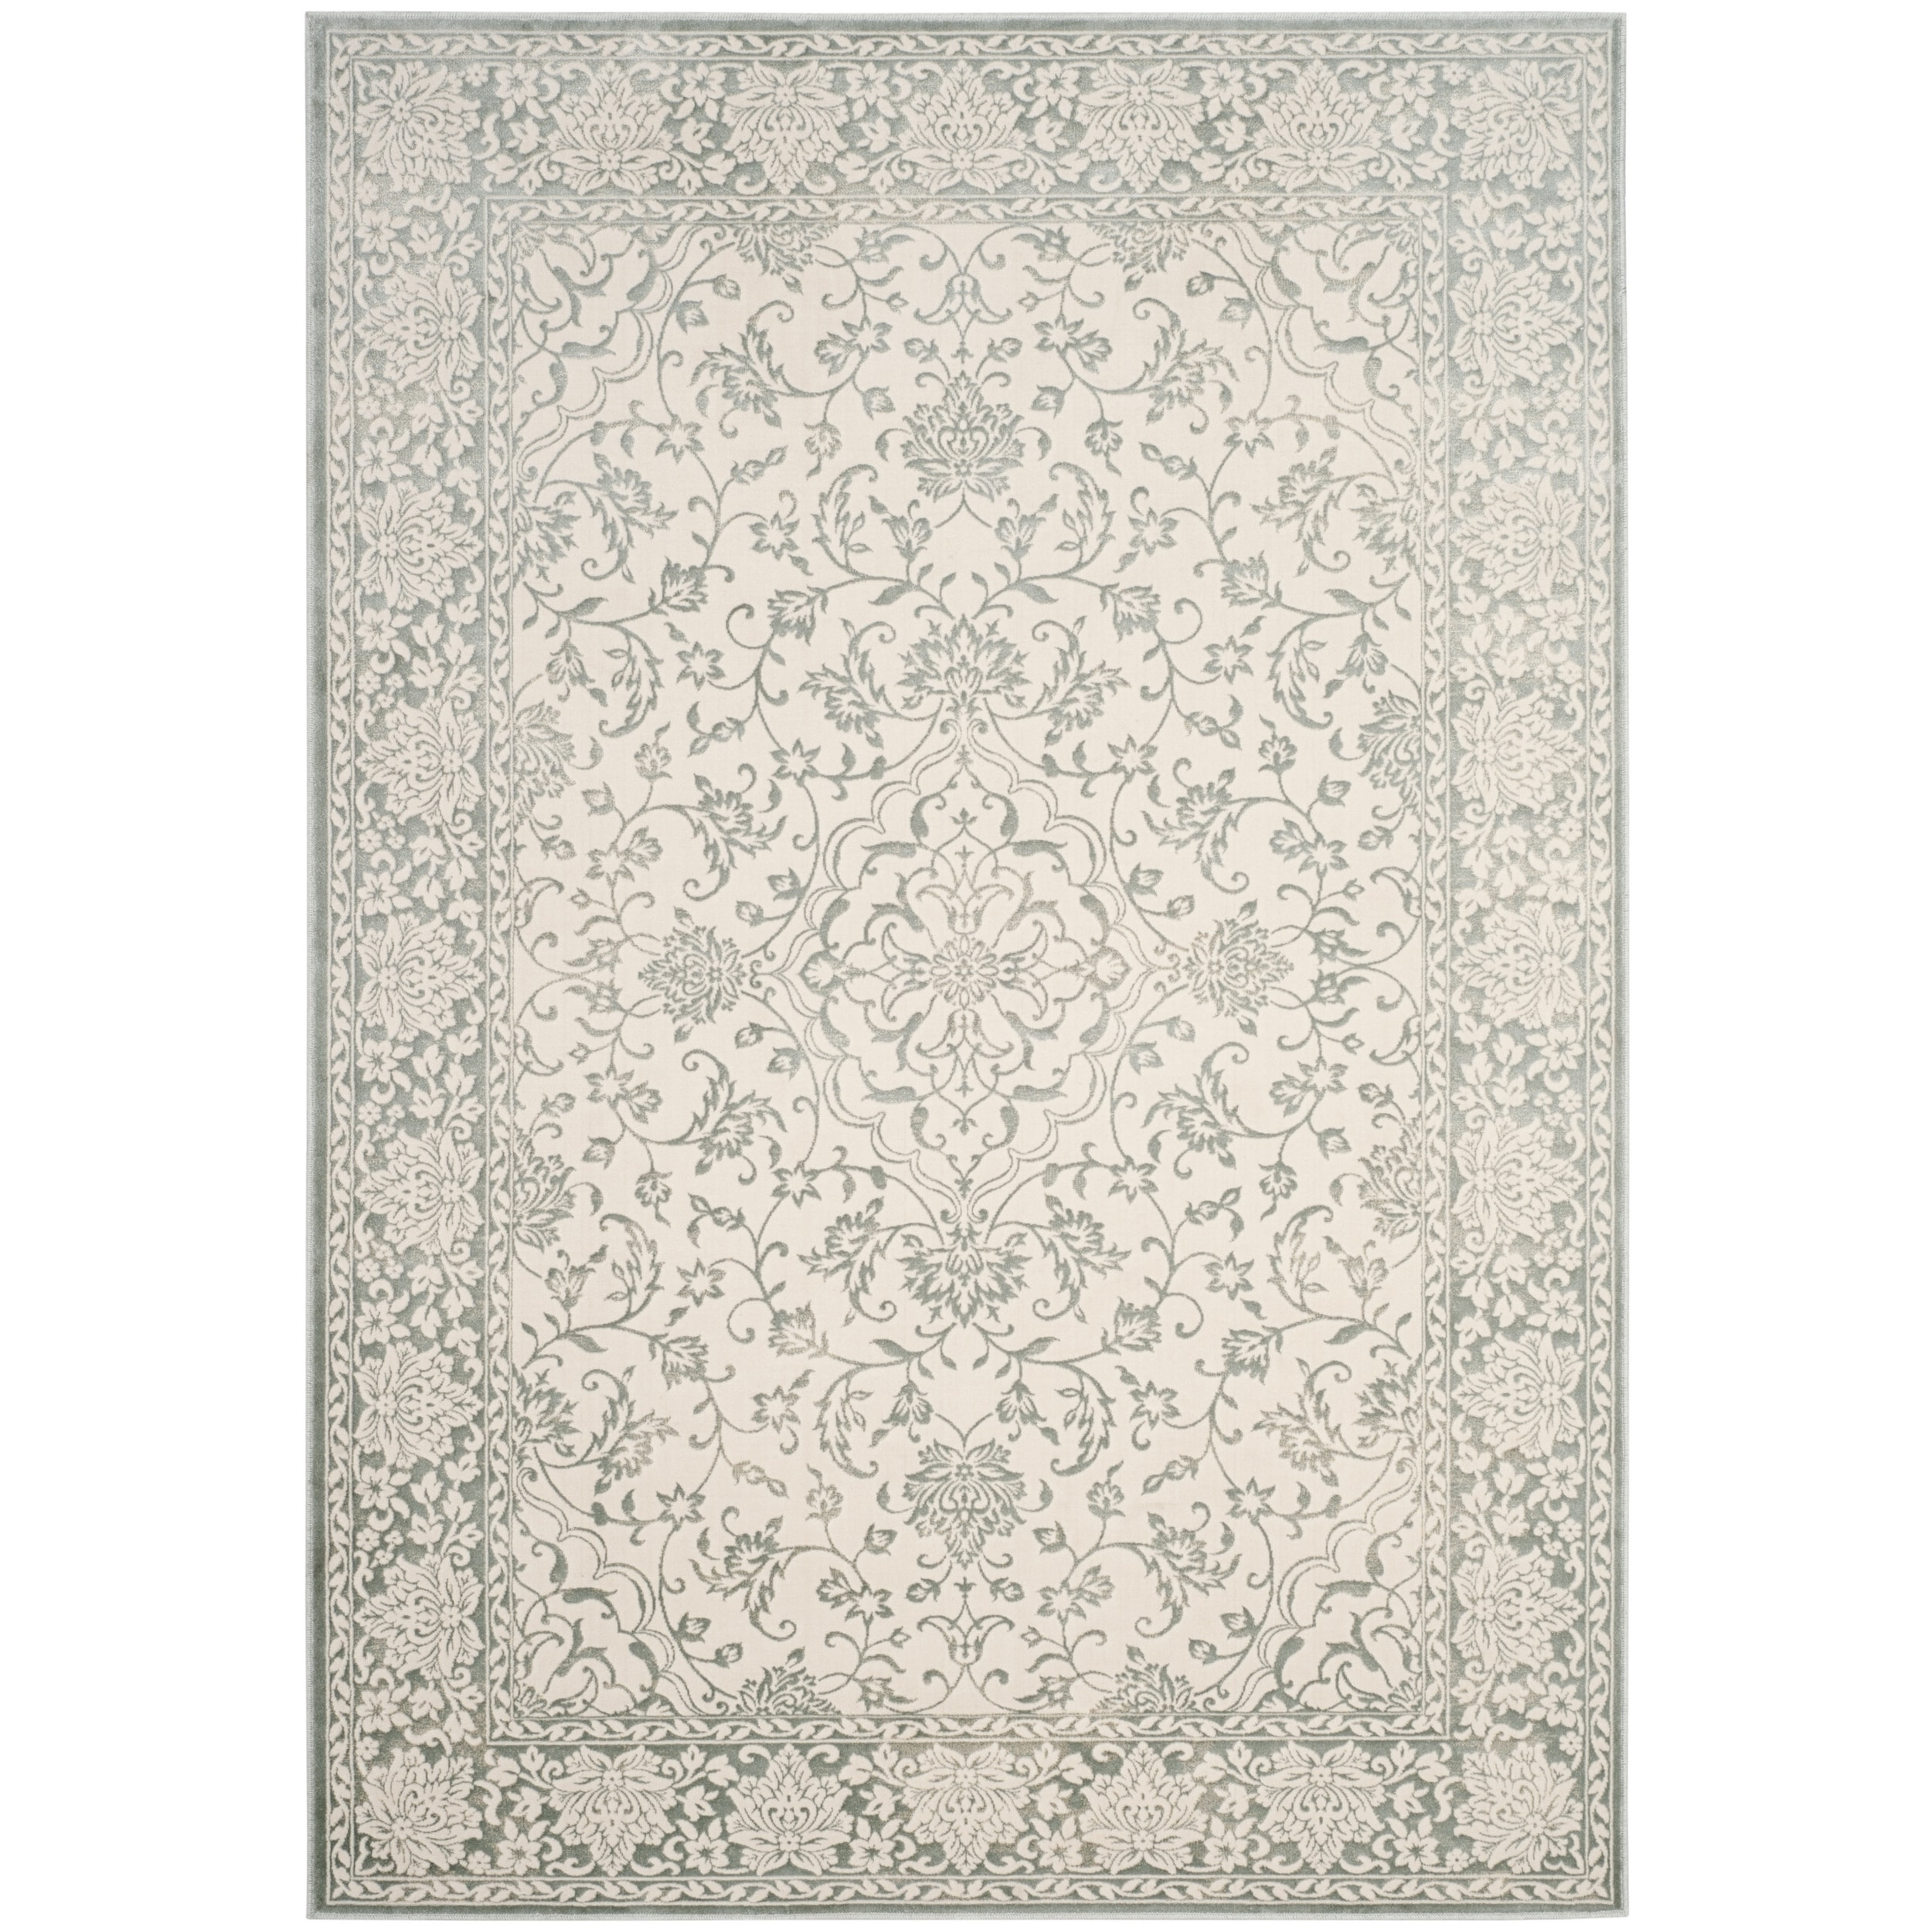 Safavieh Le Transitional Oriental Viscose Light Blue Ivory Area Rug 5 1 X 7 6 On Free Shipping Today Com 16410656